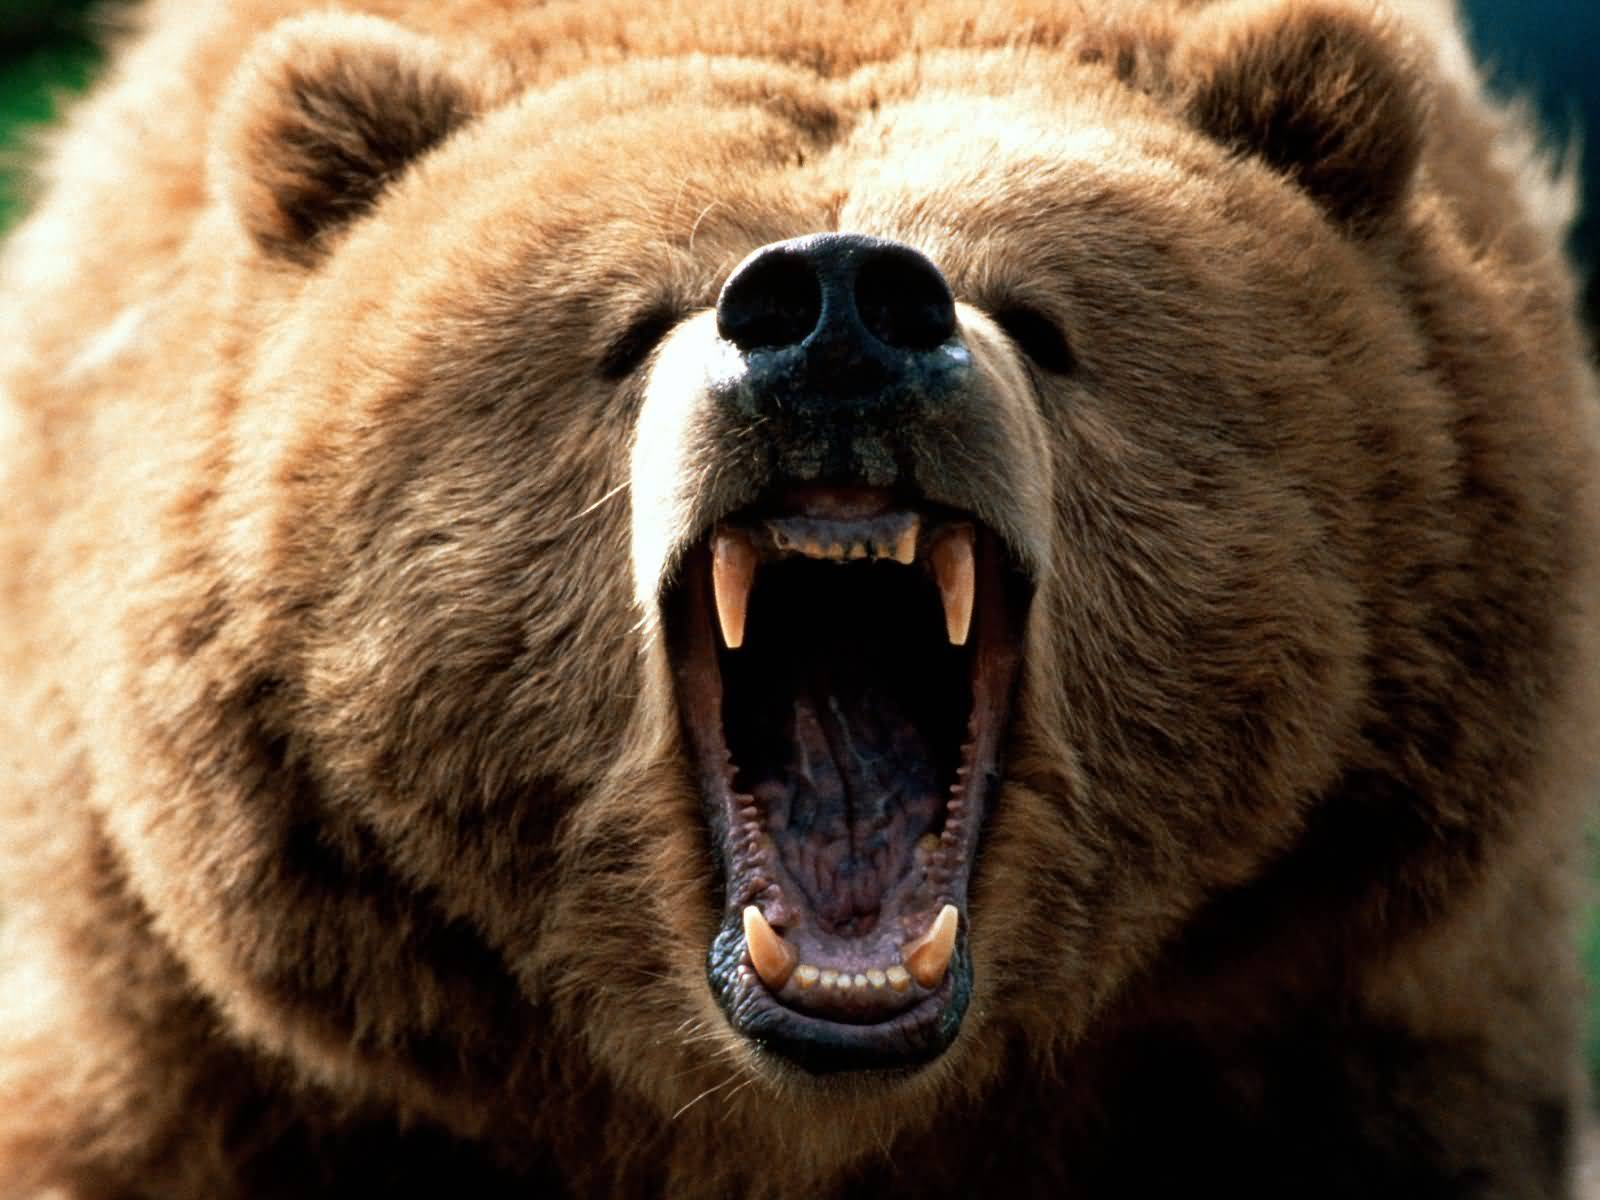 http://www.betterlivingthroughbeowulf.com/wp-content/uploads/2010/07/grizzly.jpg